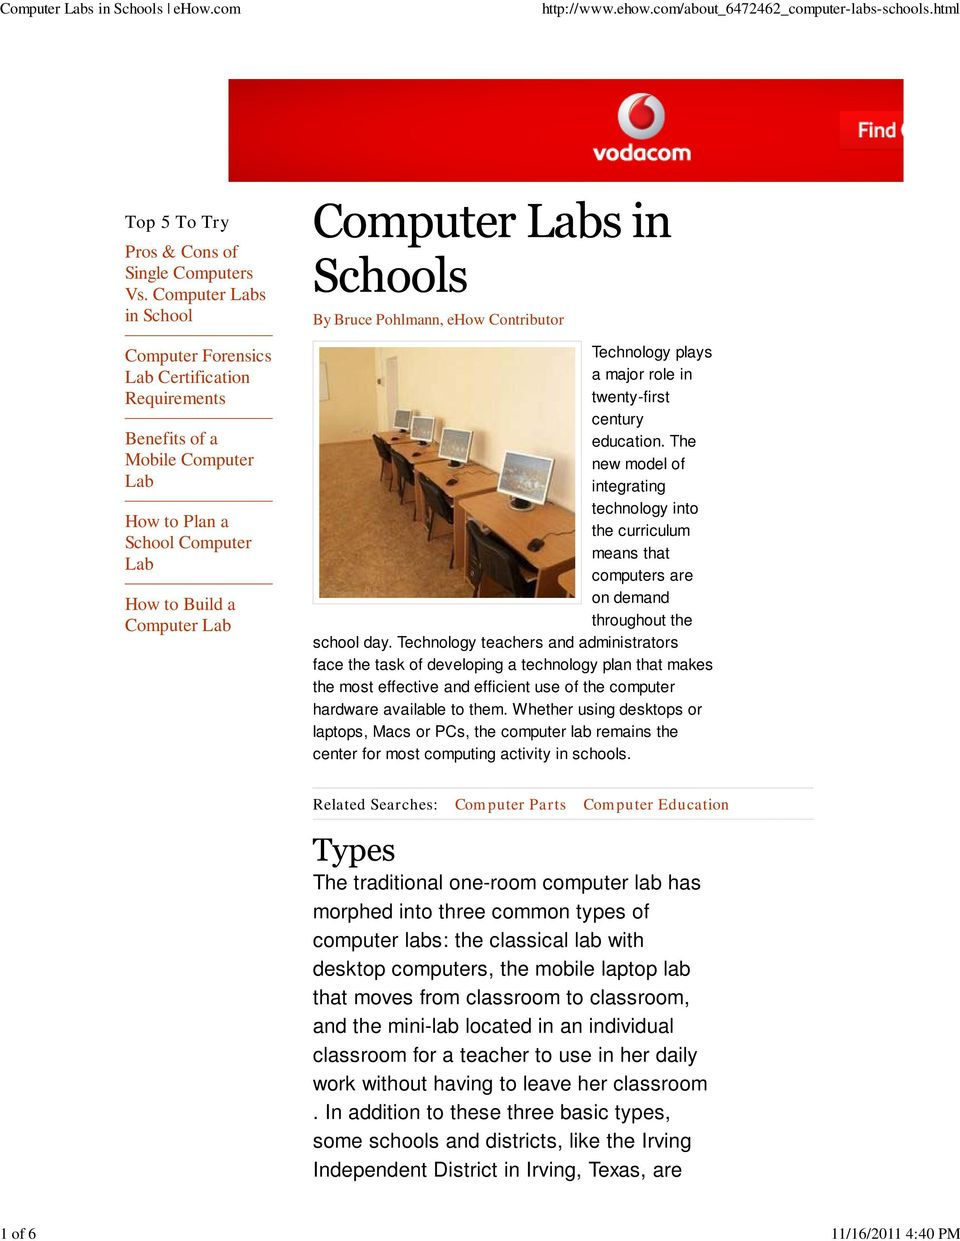 Contributor Technology plays a major role in twenty-first century education. The new model of integrating technology into the curriculum means that computers are on demand throughout the school day.